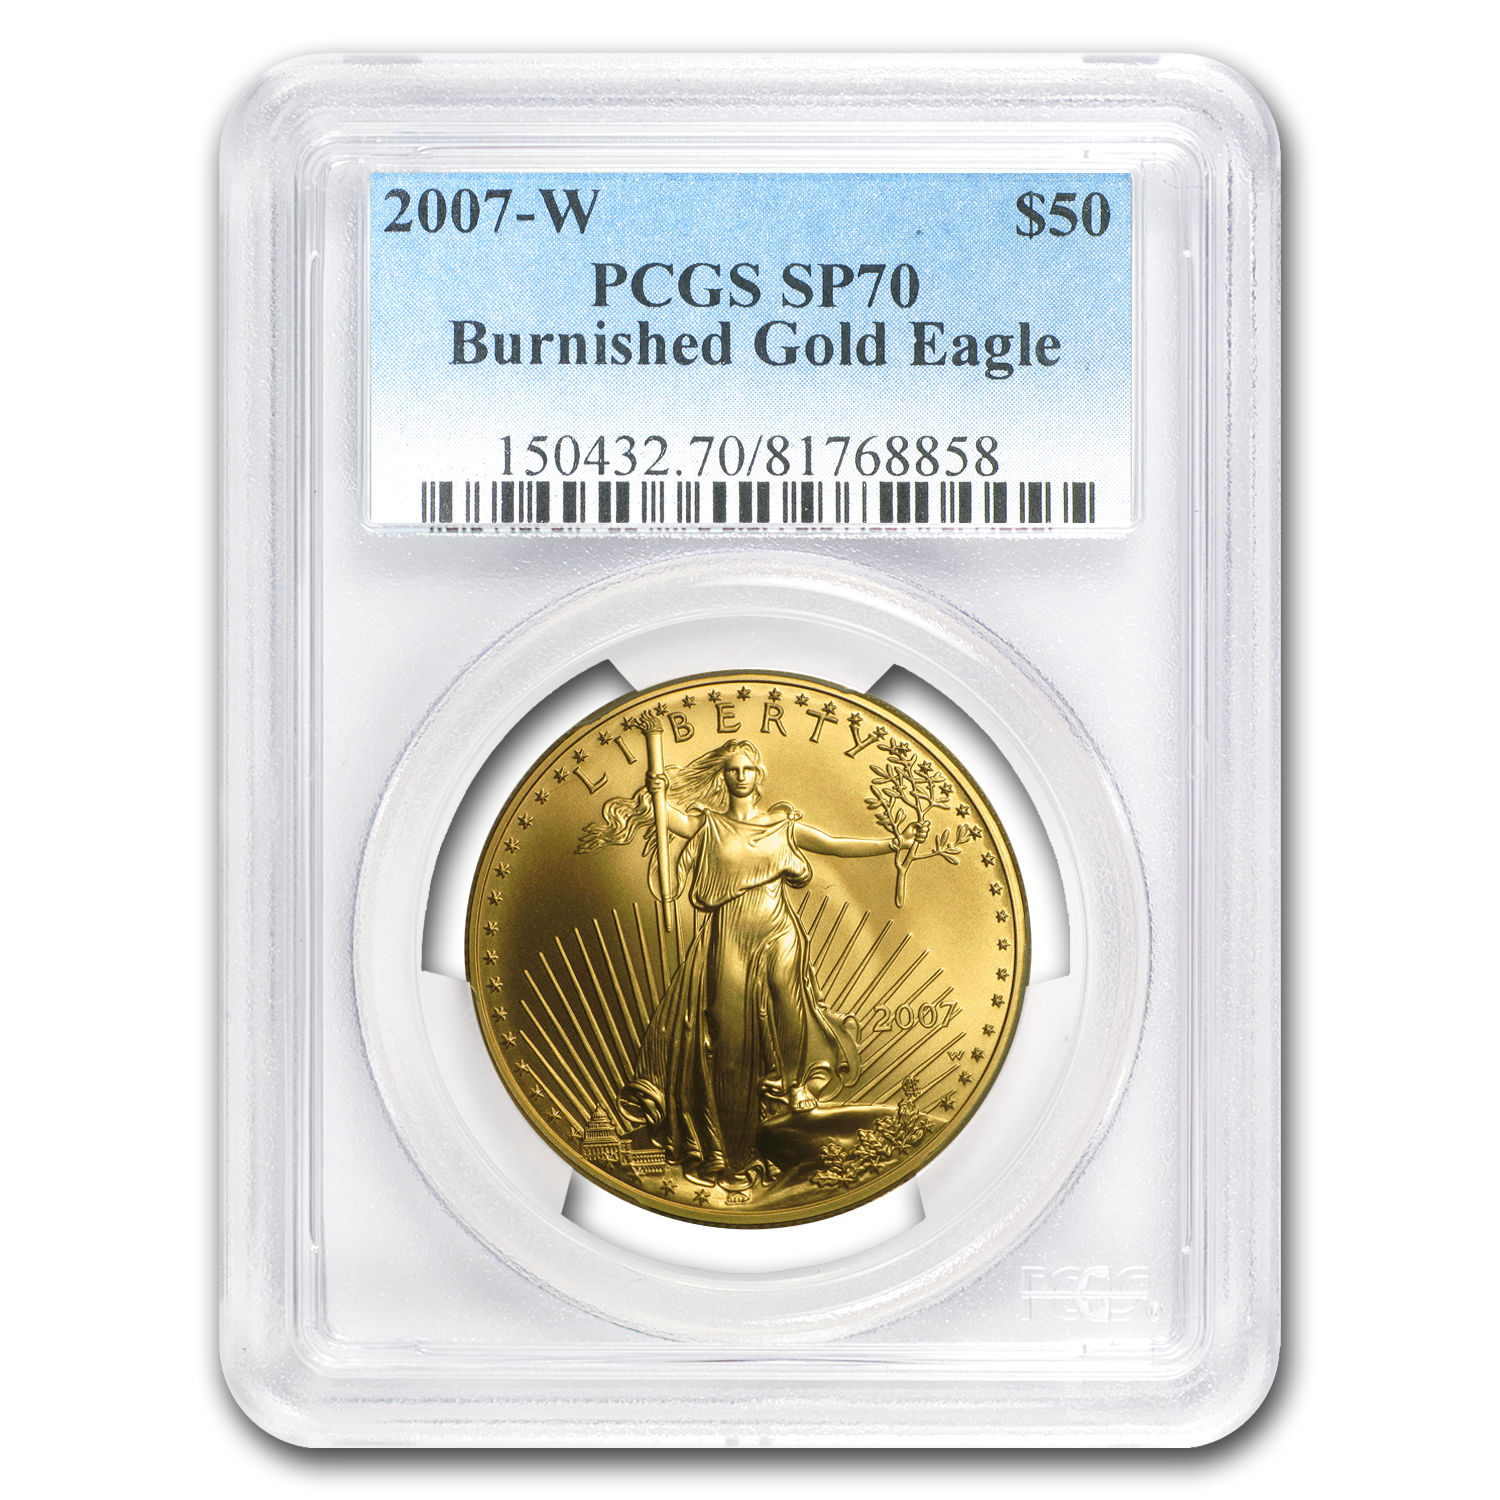 2007-W 1 oz Burnished Gold Eagle MS-70 PCGS